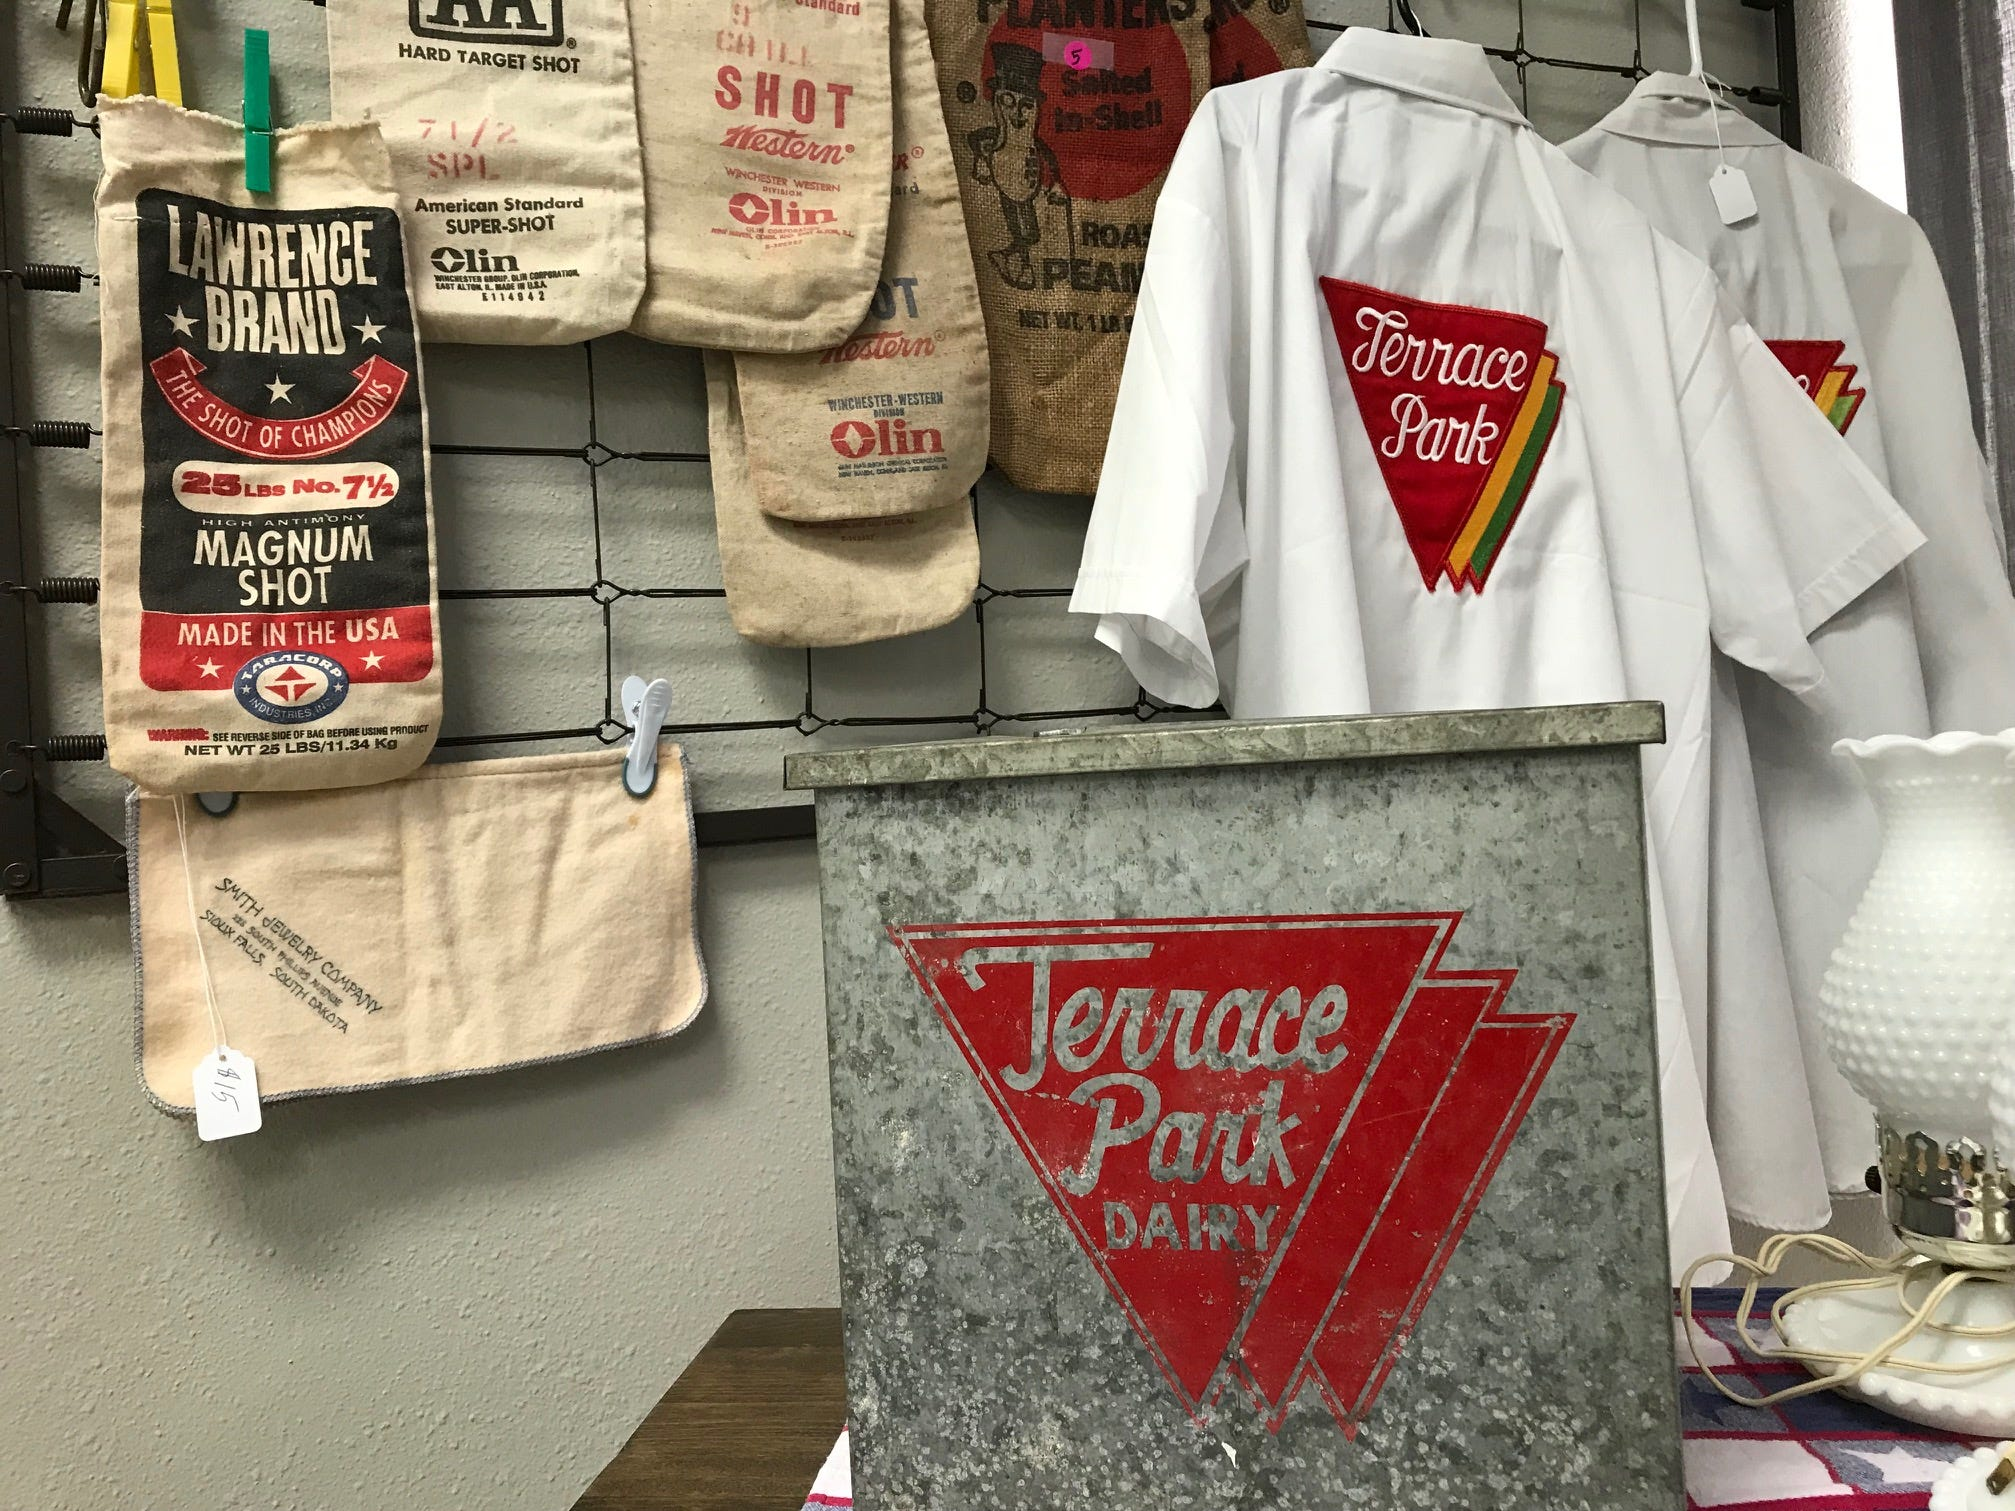 A selection of Sioux Falls related goods, including items from Terrace Park Dairy, inside the new Repurpose Project Center in Sioux Falls.